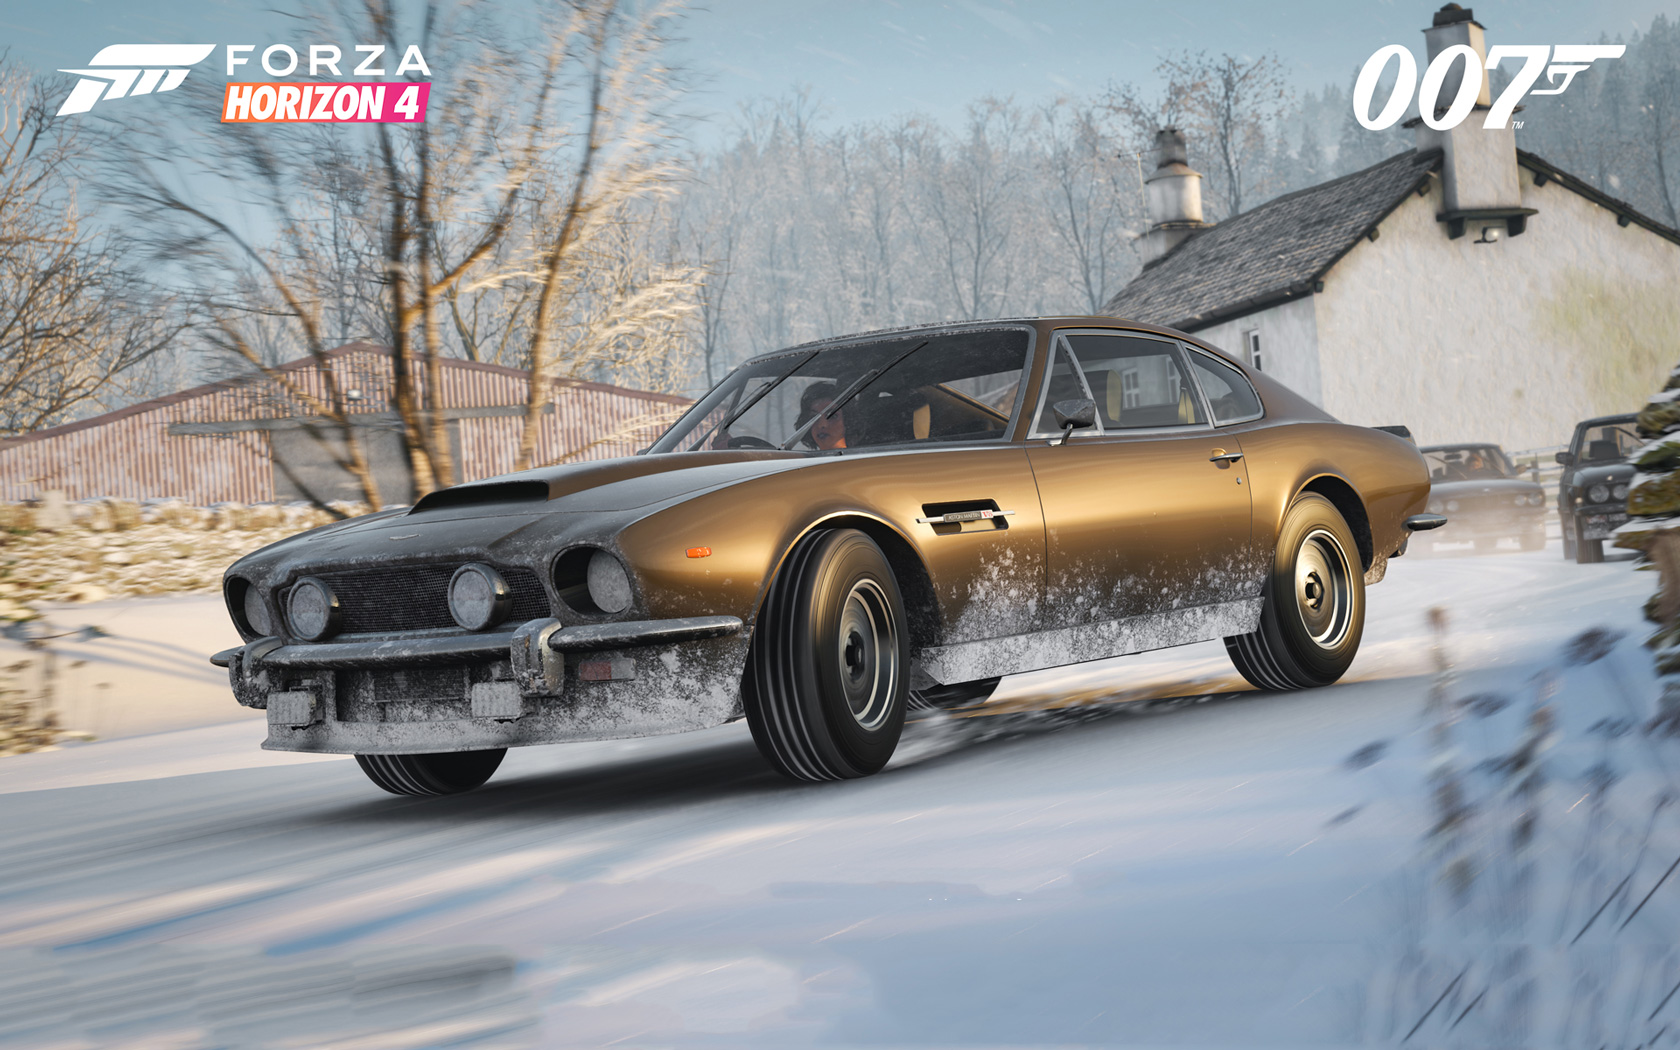 Free Forza Horizon 4 Wallpaper in 1680x1050